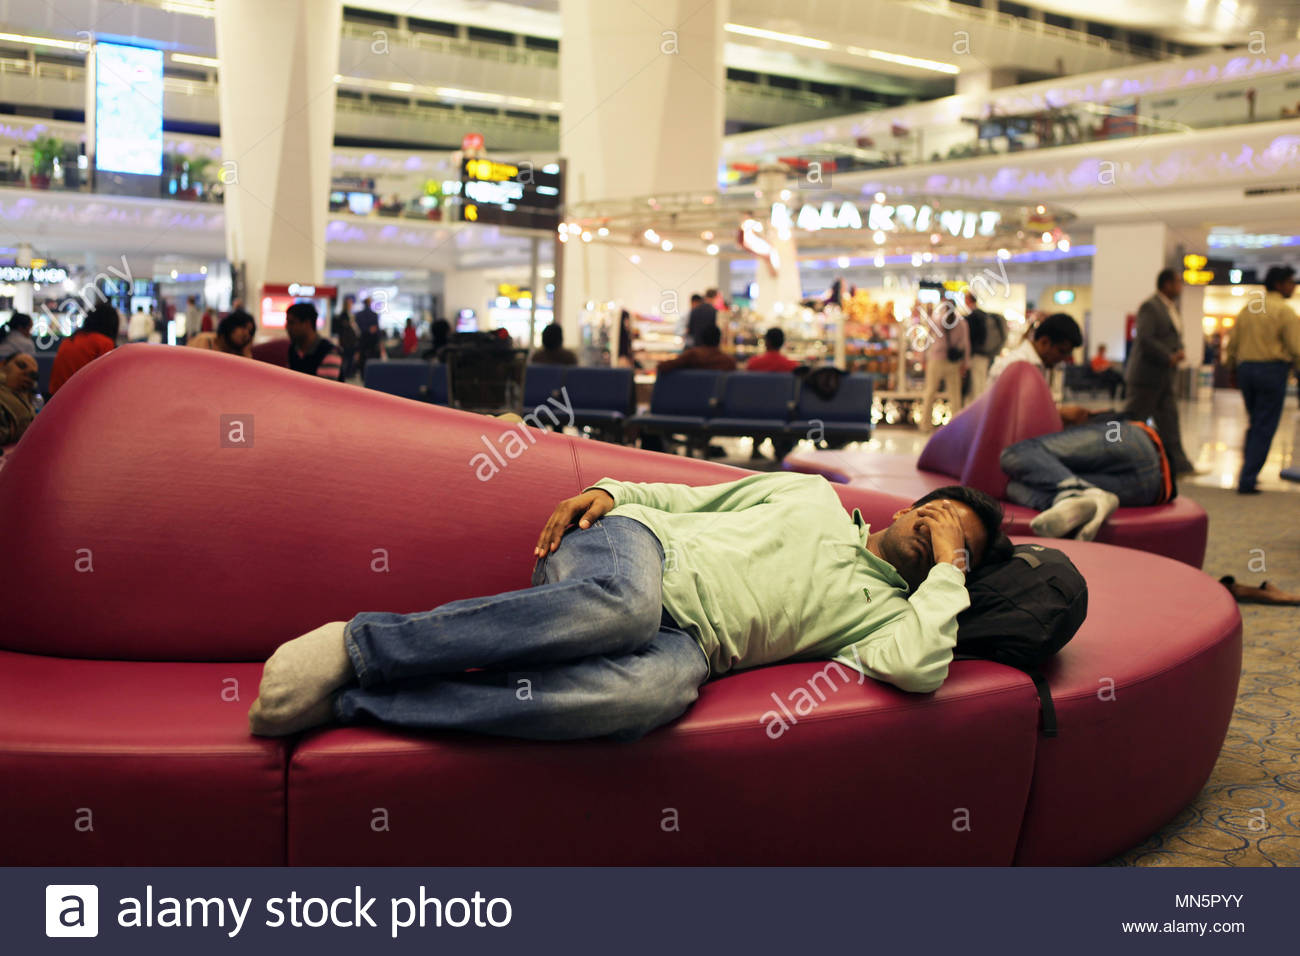 A young man takes a nap at around 3 AM while waiting for an early morning flight in the recently renovated terminal 3 at Indira Gandhi International A - Stock Image